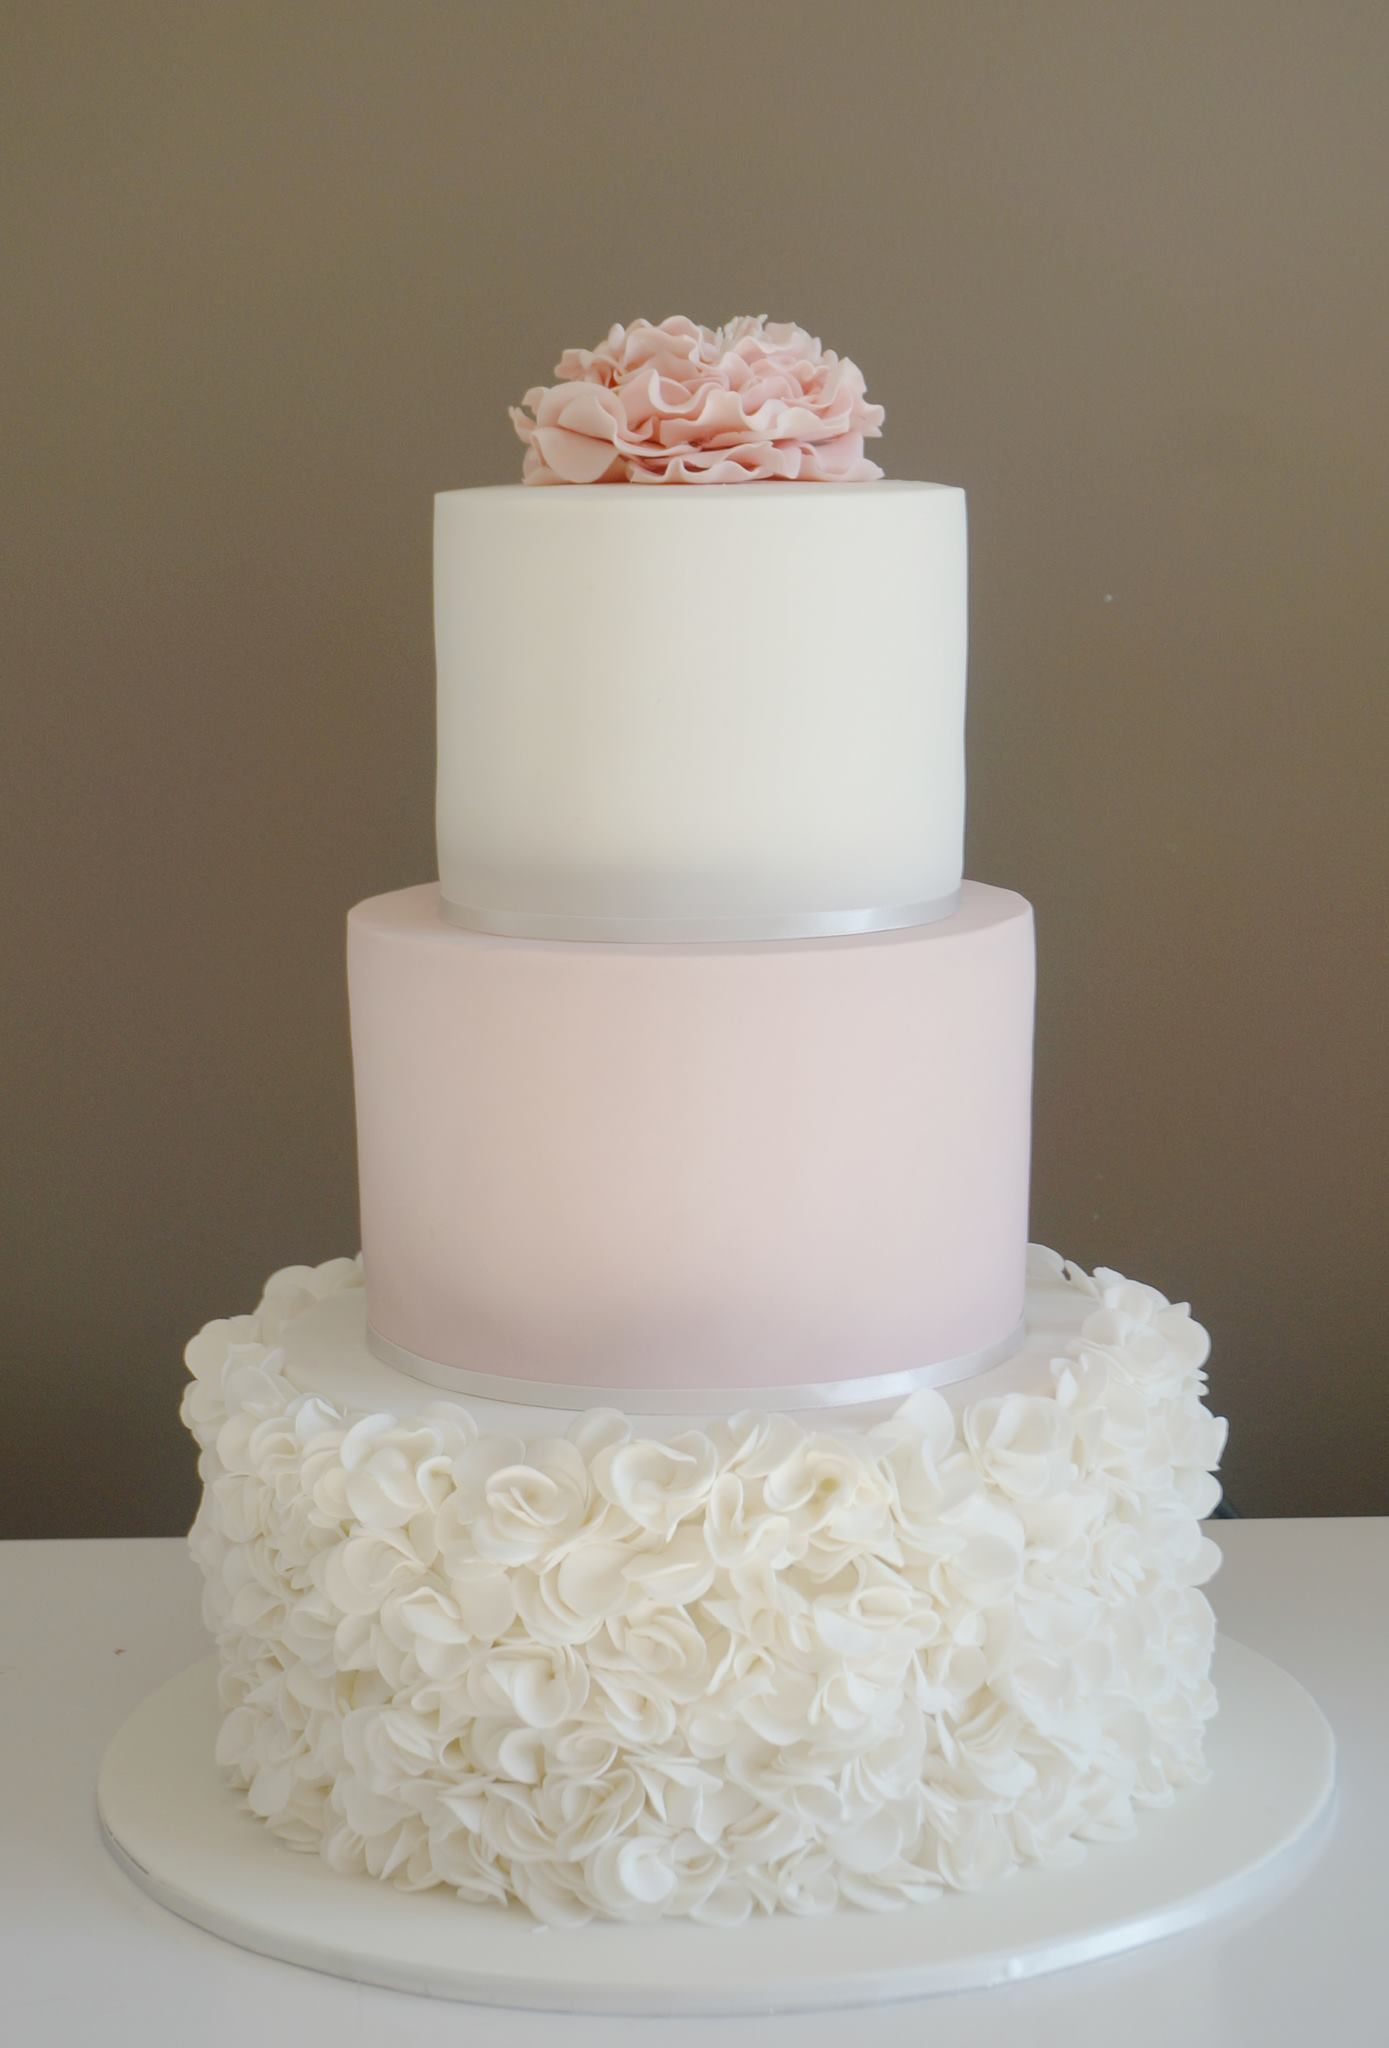 PINK AND WHITE WEDDING CAKE VERY PRETTY 3 Tier Cake With Ruffle - 3 Tier Wedding Cakes